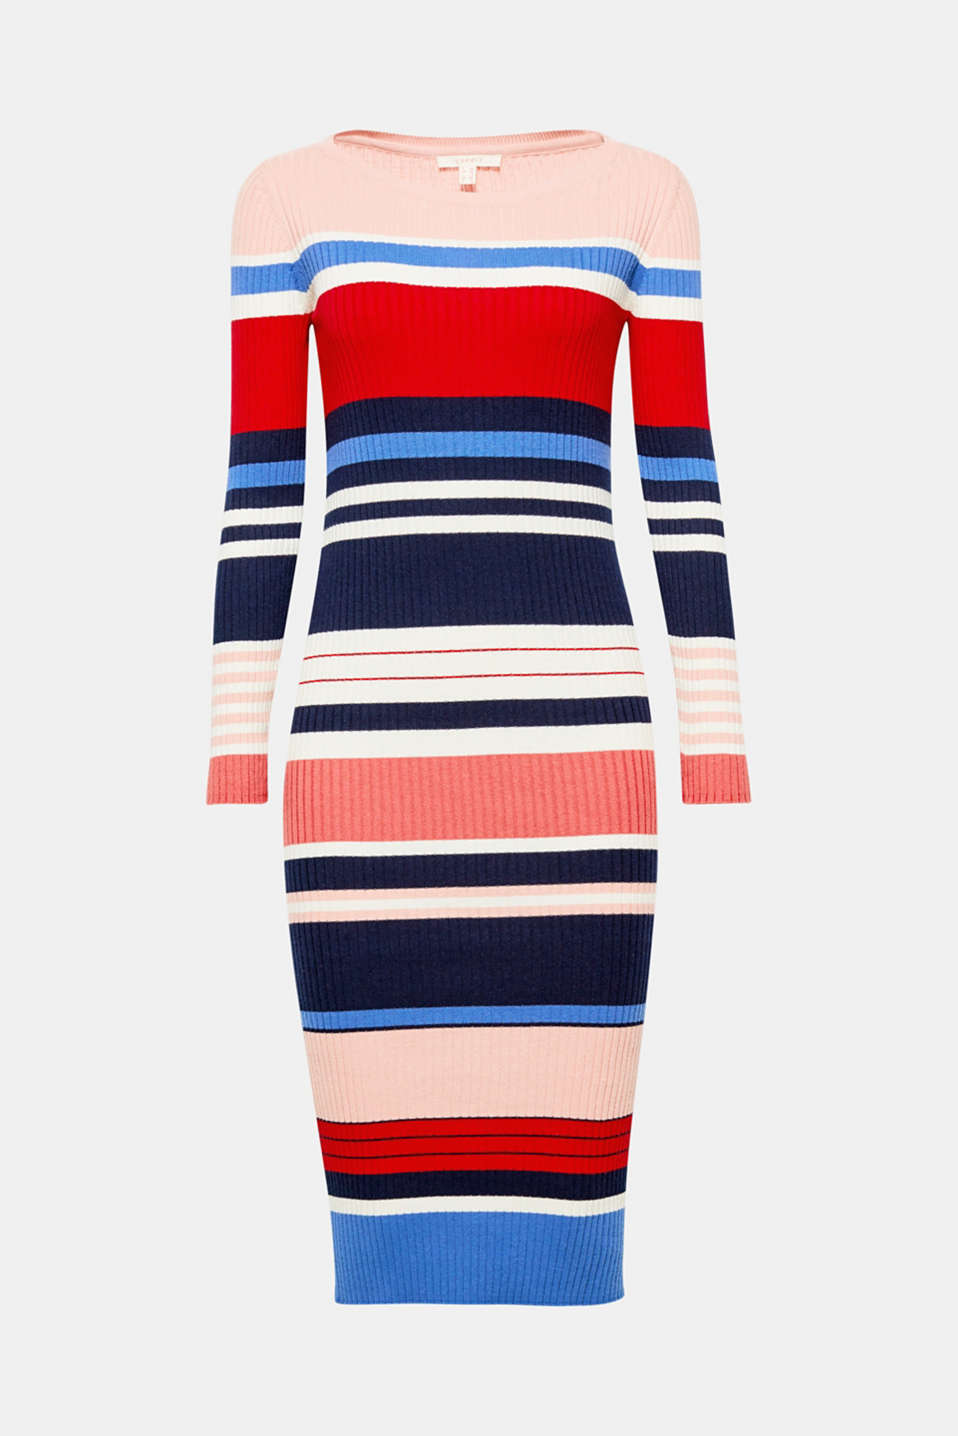 Everything is done to the max: length, lightness, colours, stripes! And this fine knit dress is comfortable to boot!